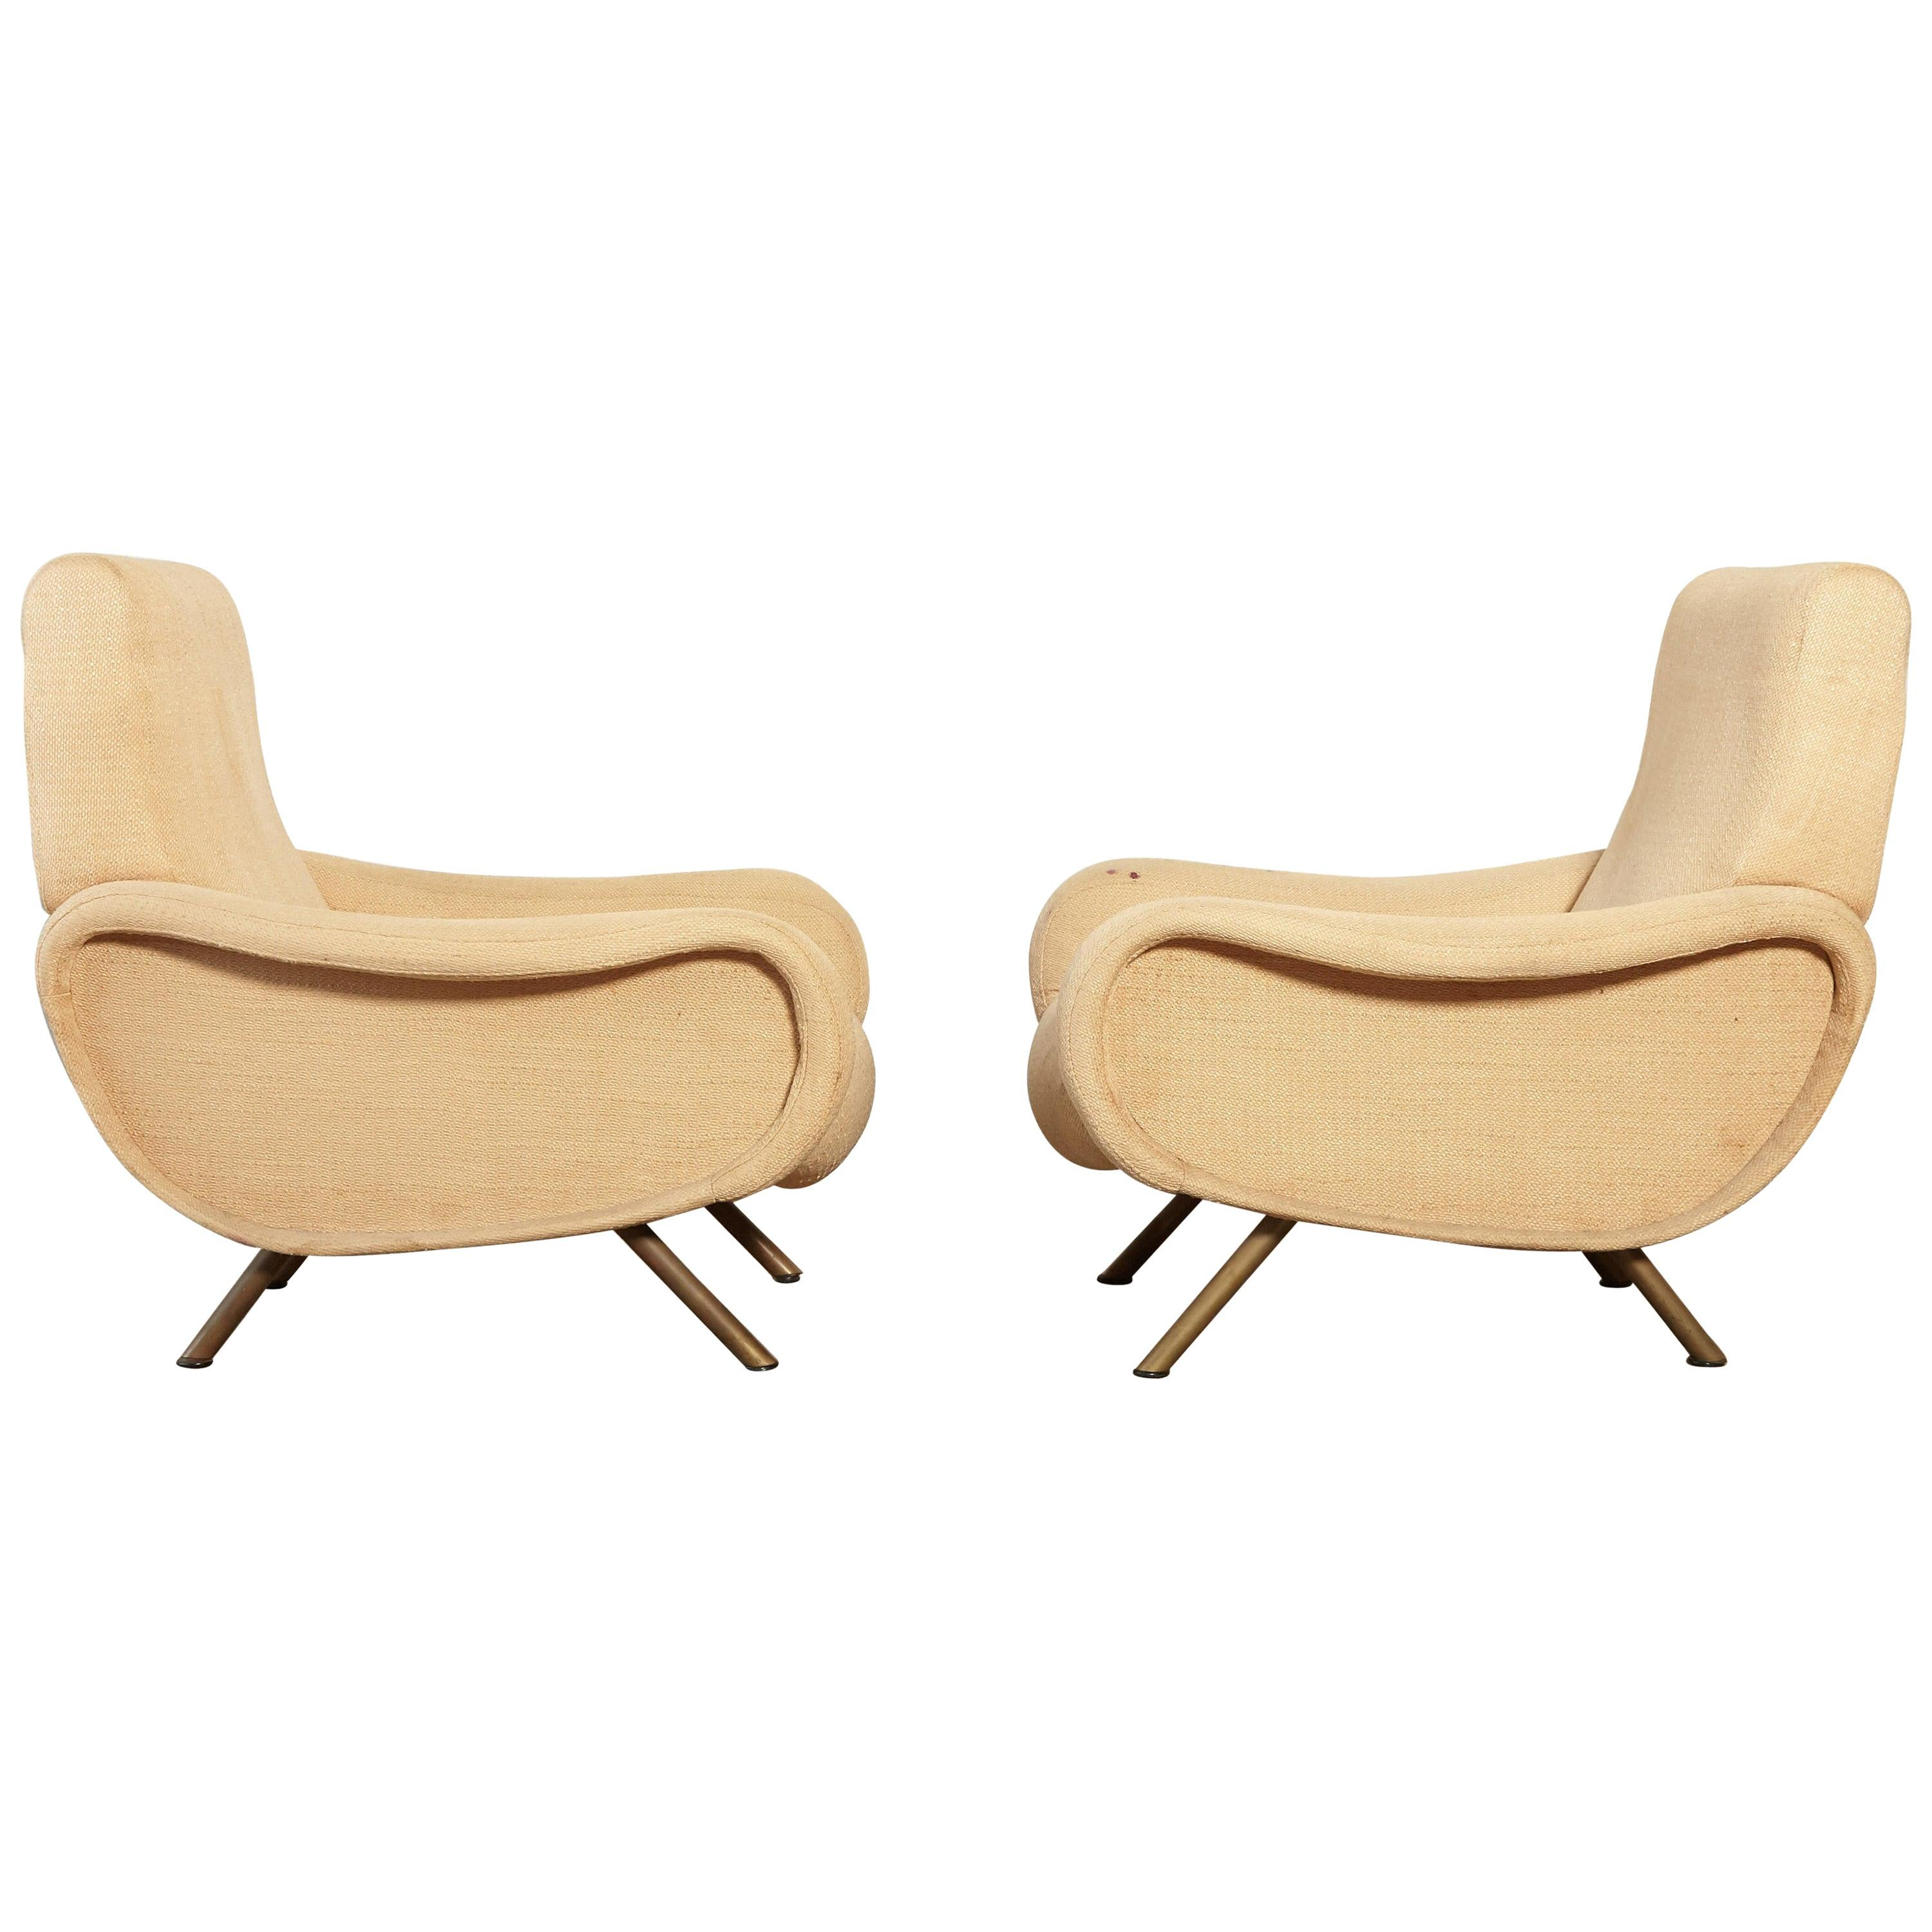 Marco Zanuso Lady Chairs, Arflex, Italy, 1950s, Includes Reupholstery in COM